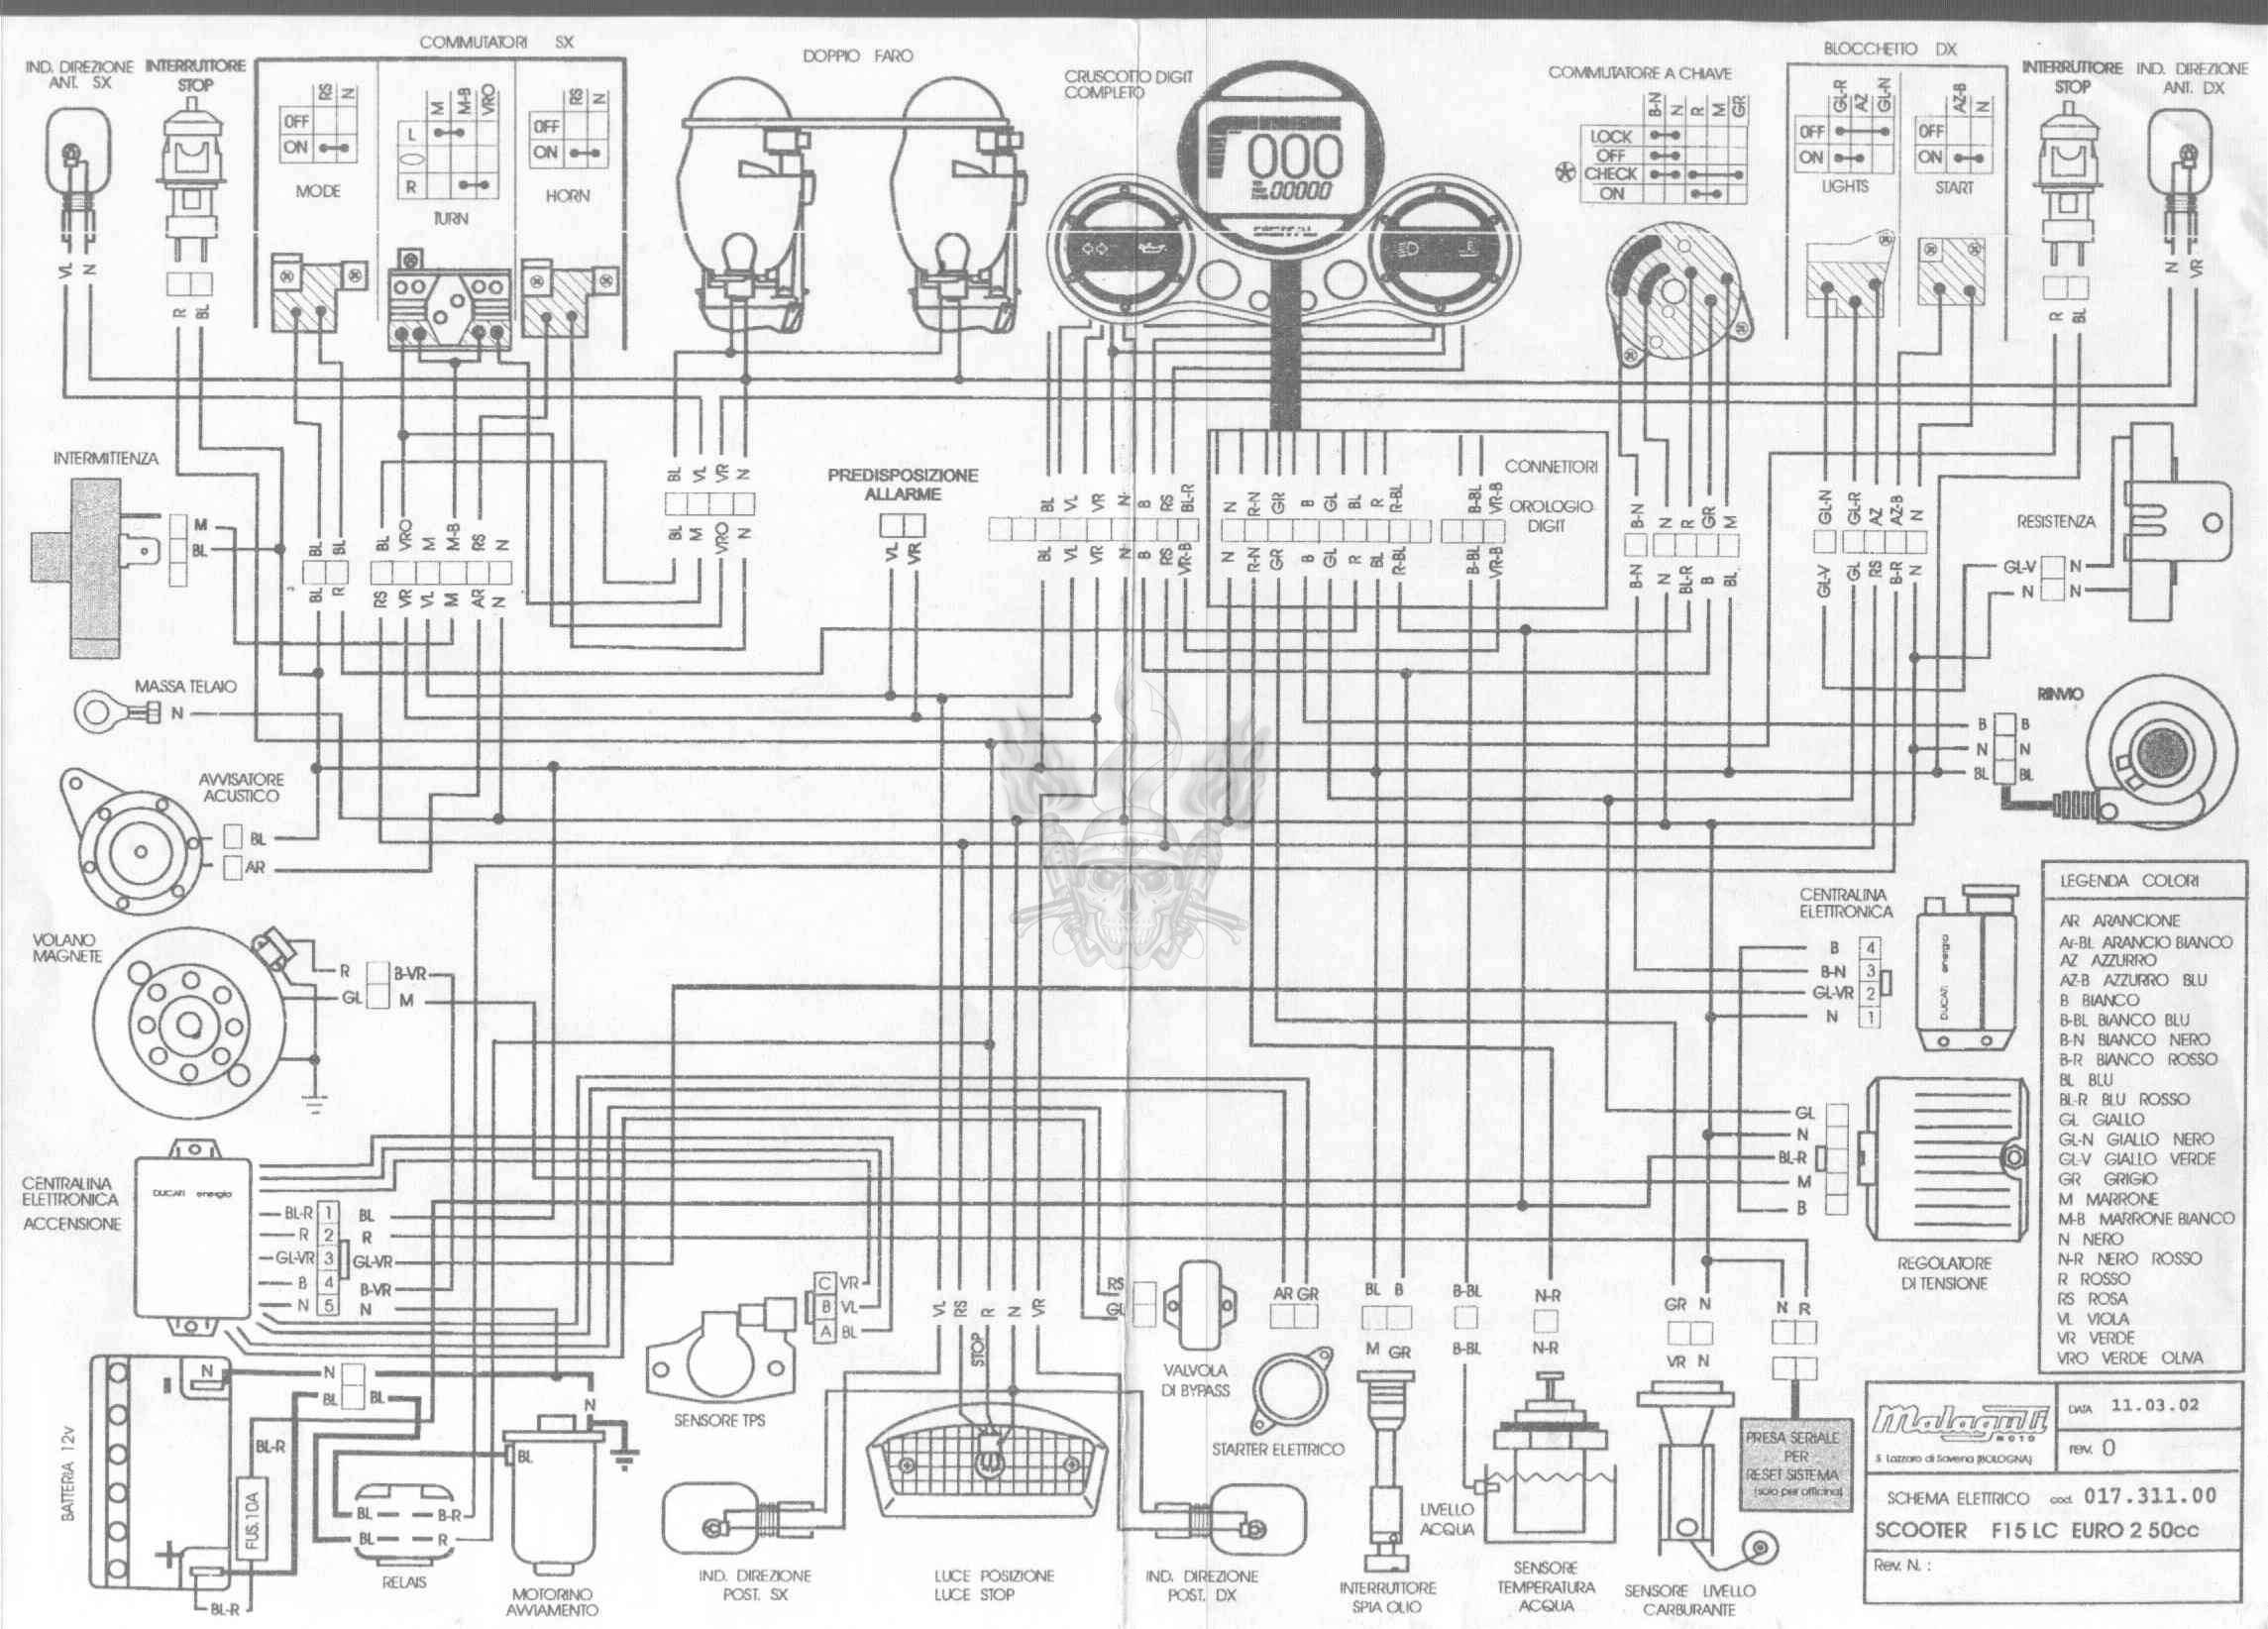 Electric Scooter Wiring Diagrams All Image About Wiring Diagram And